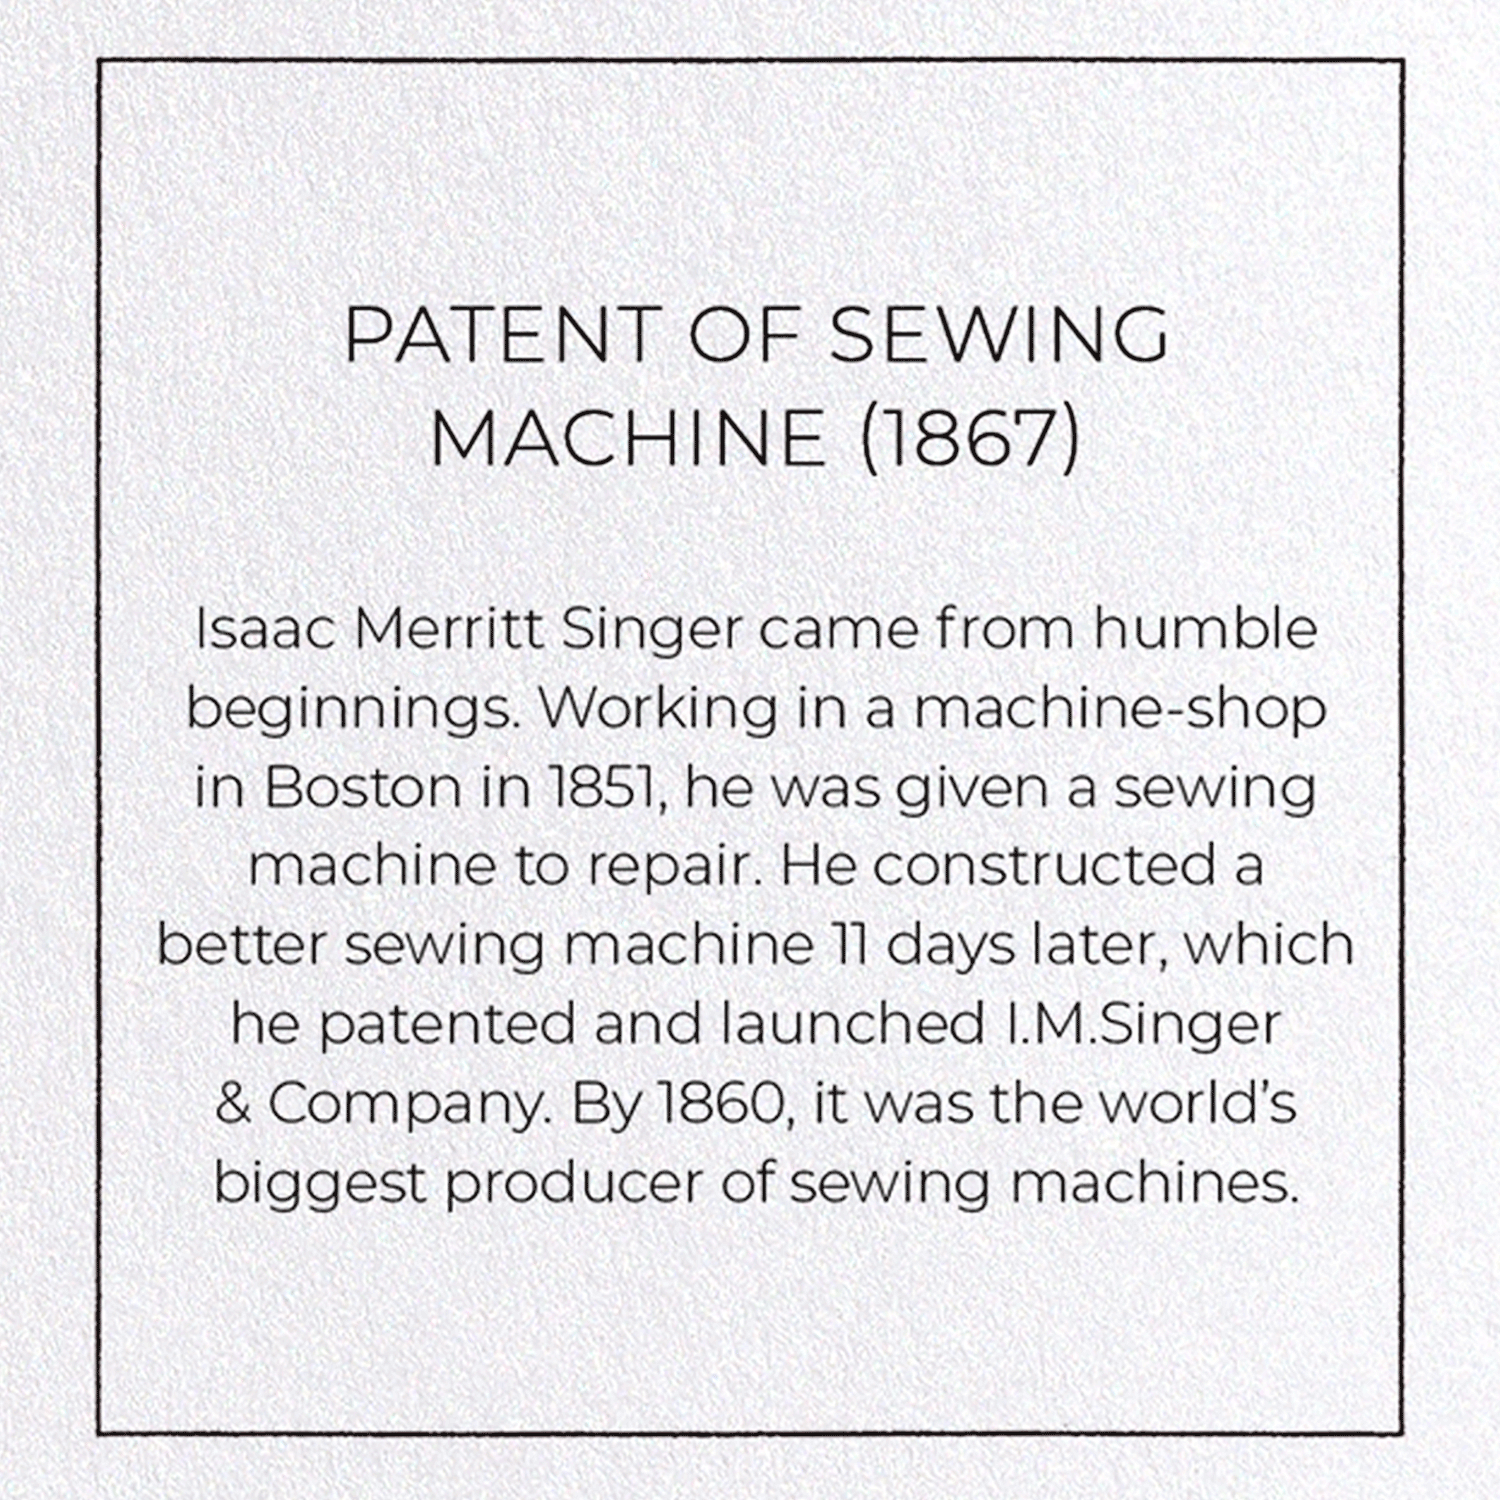 PATENT OF SEWING MACHINE (1867)